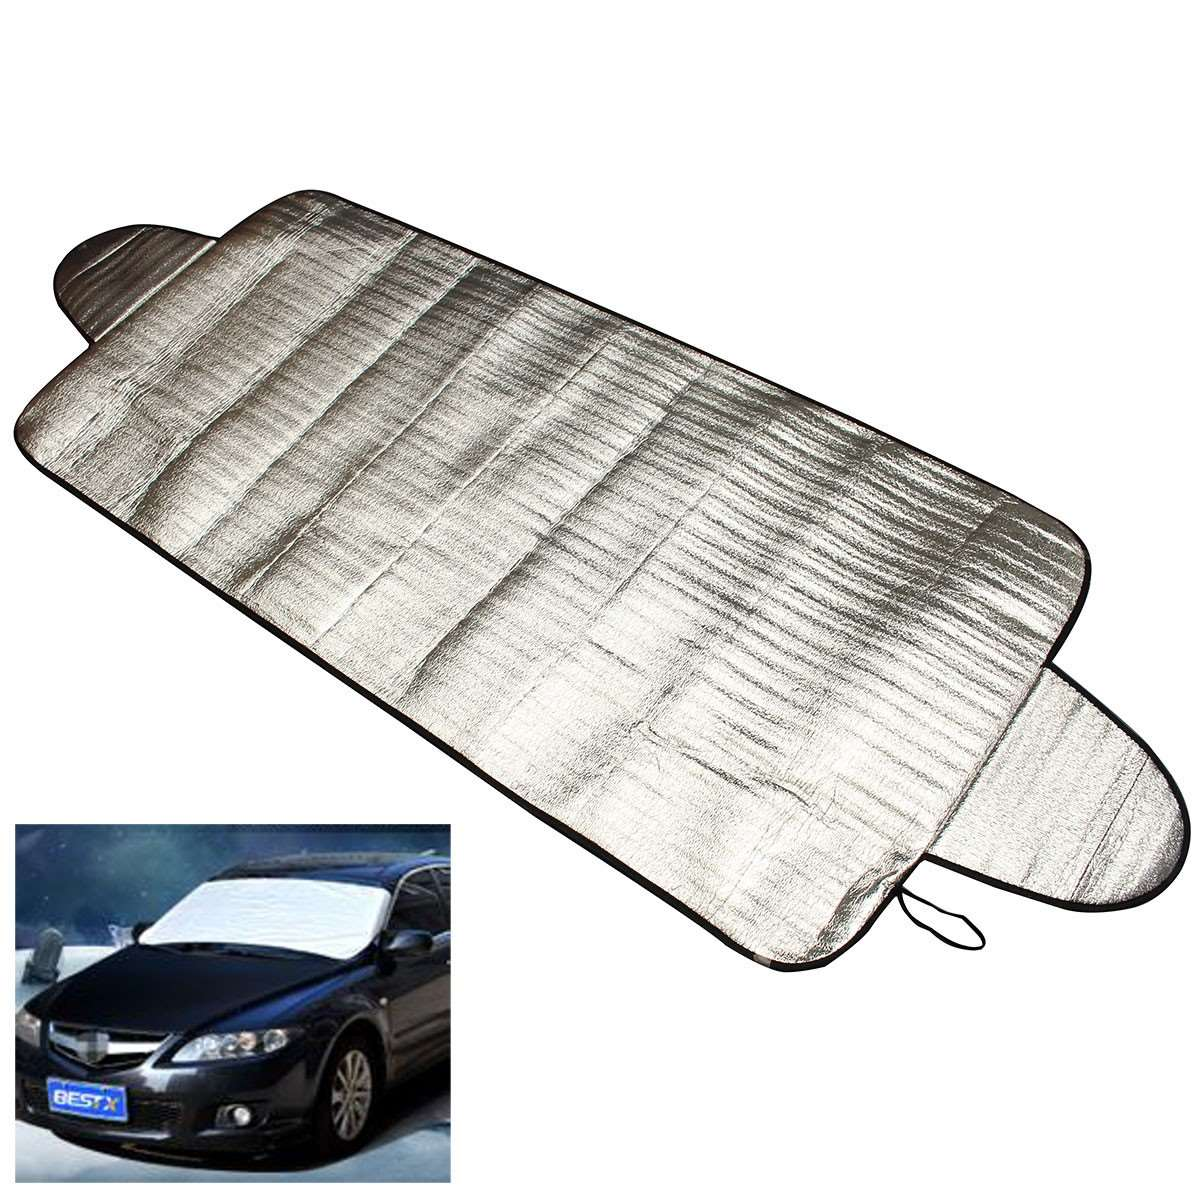 Windshield Cover Keep Your Windshield Snow, Ice And Frost Free